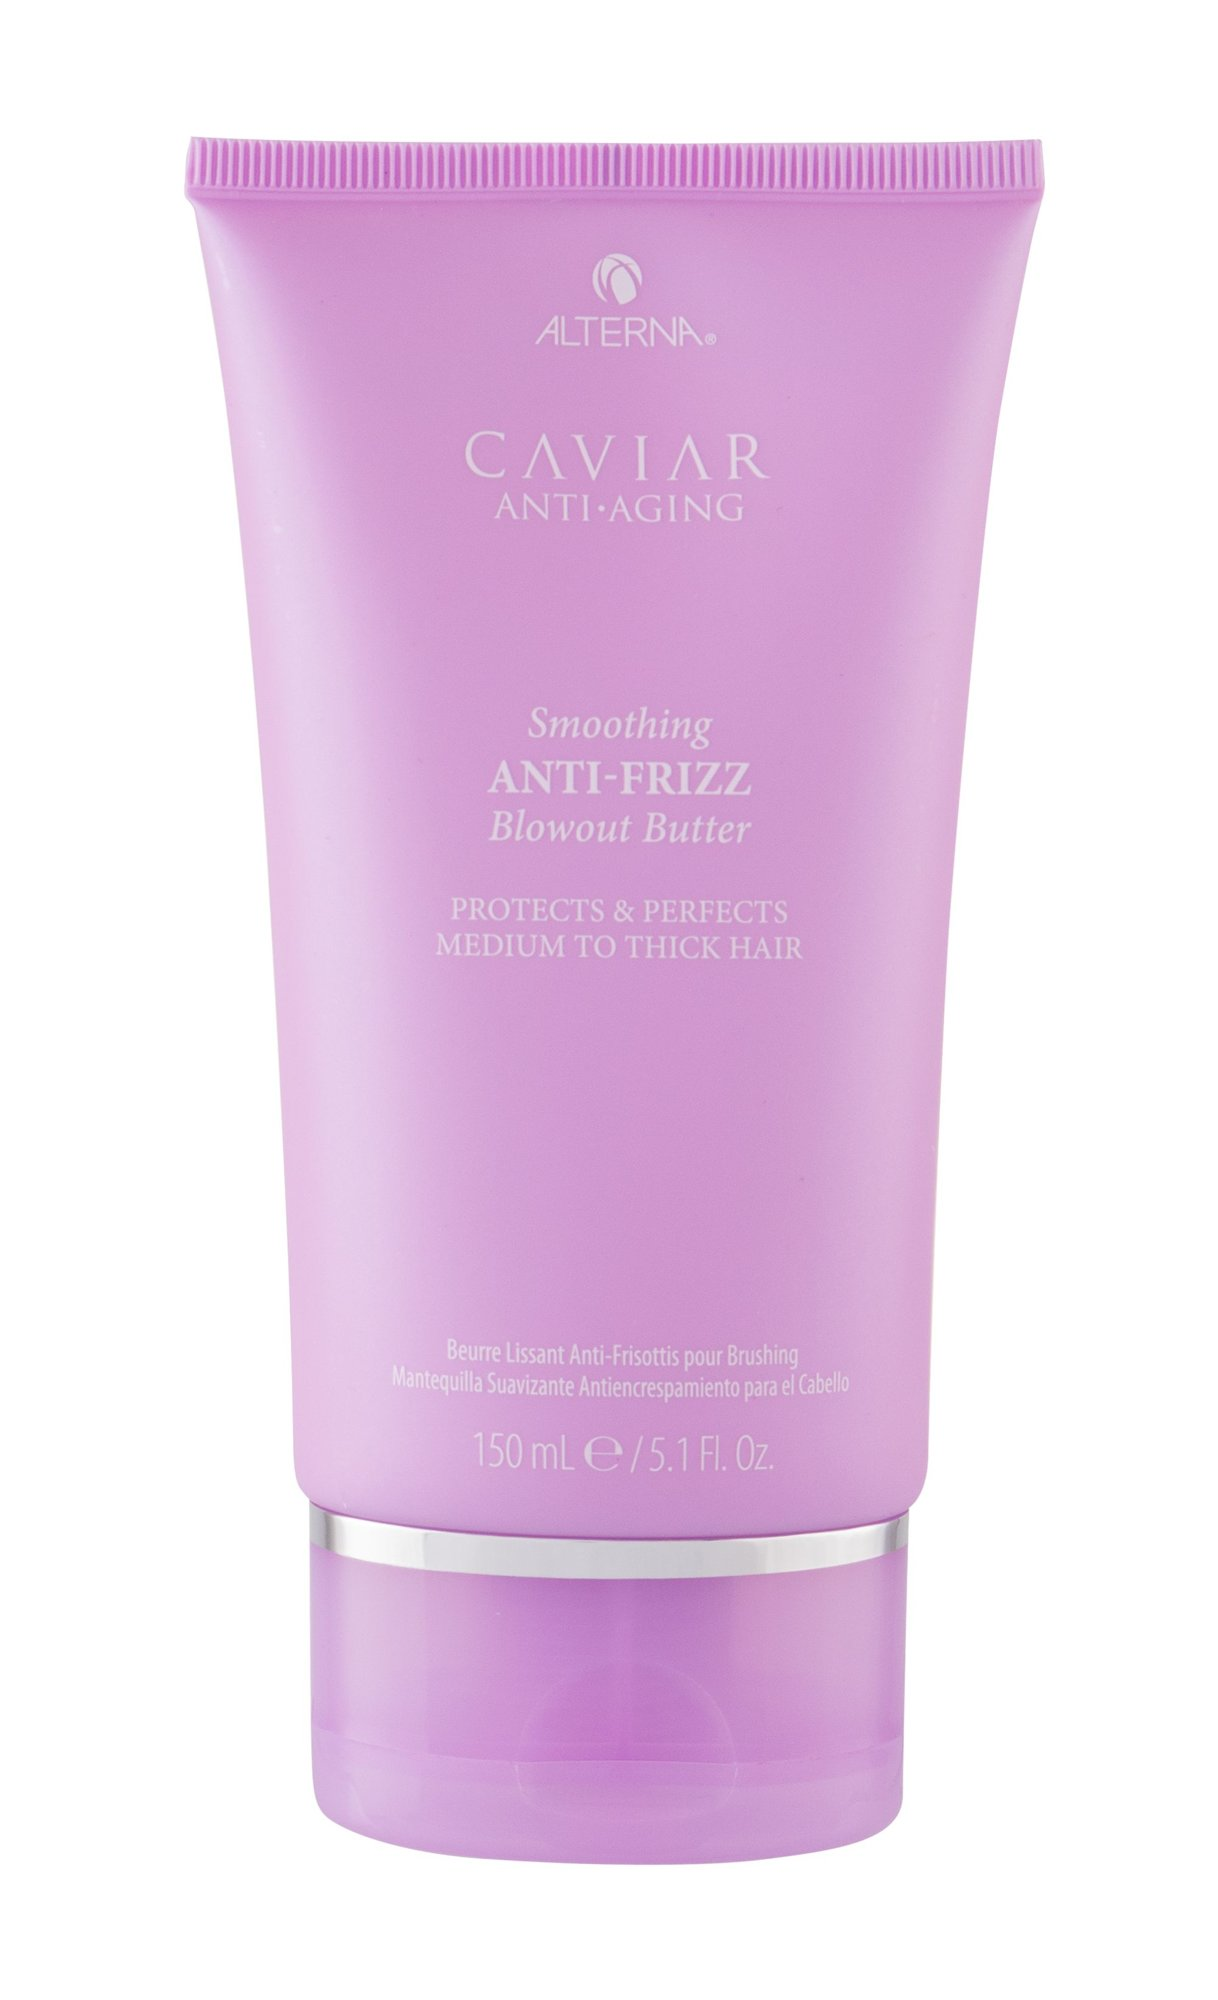 Alterna Caviar Anti-Aging Hair Mask 150ml